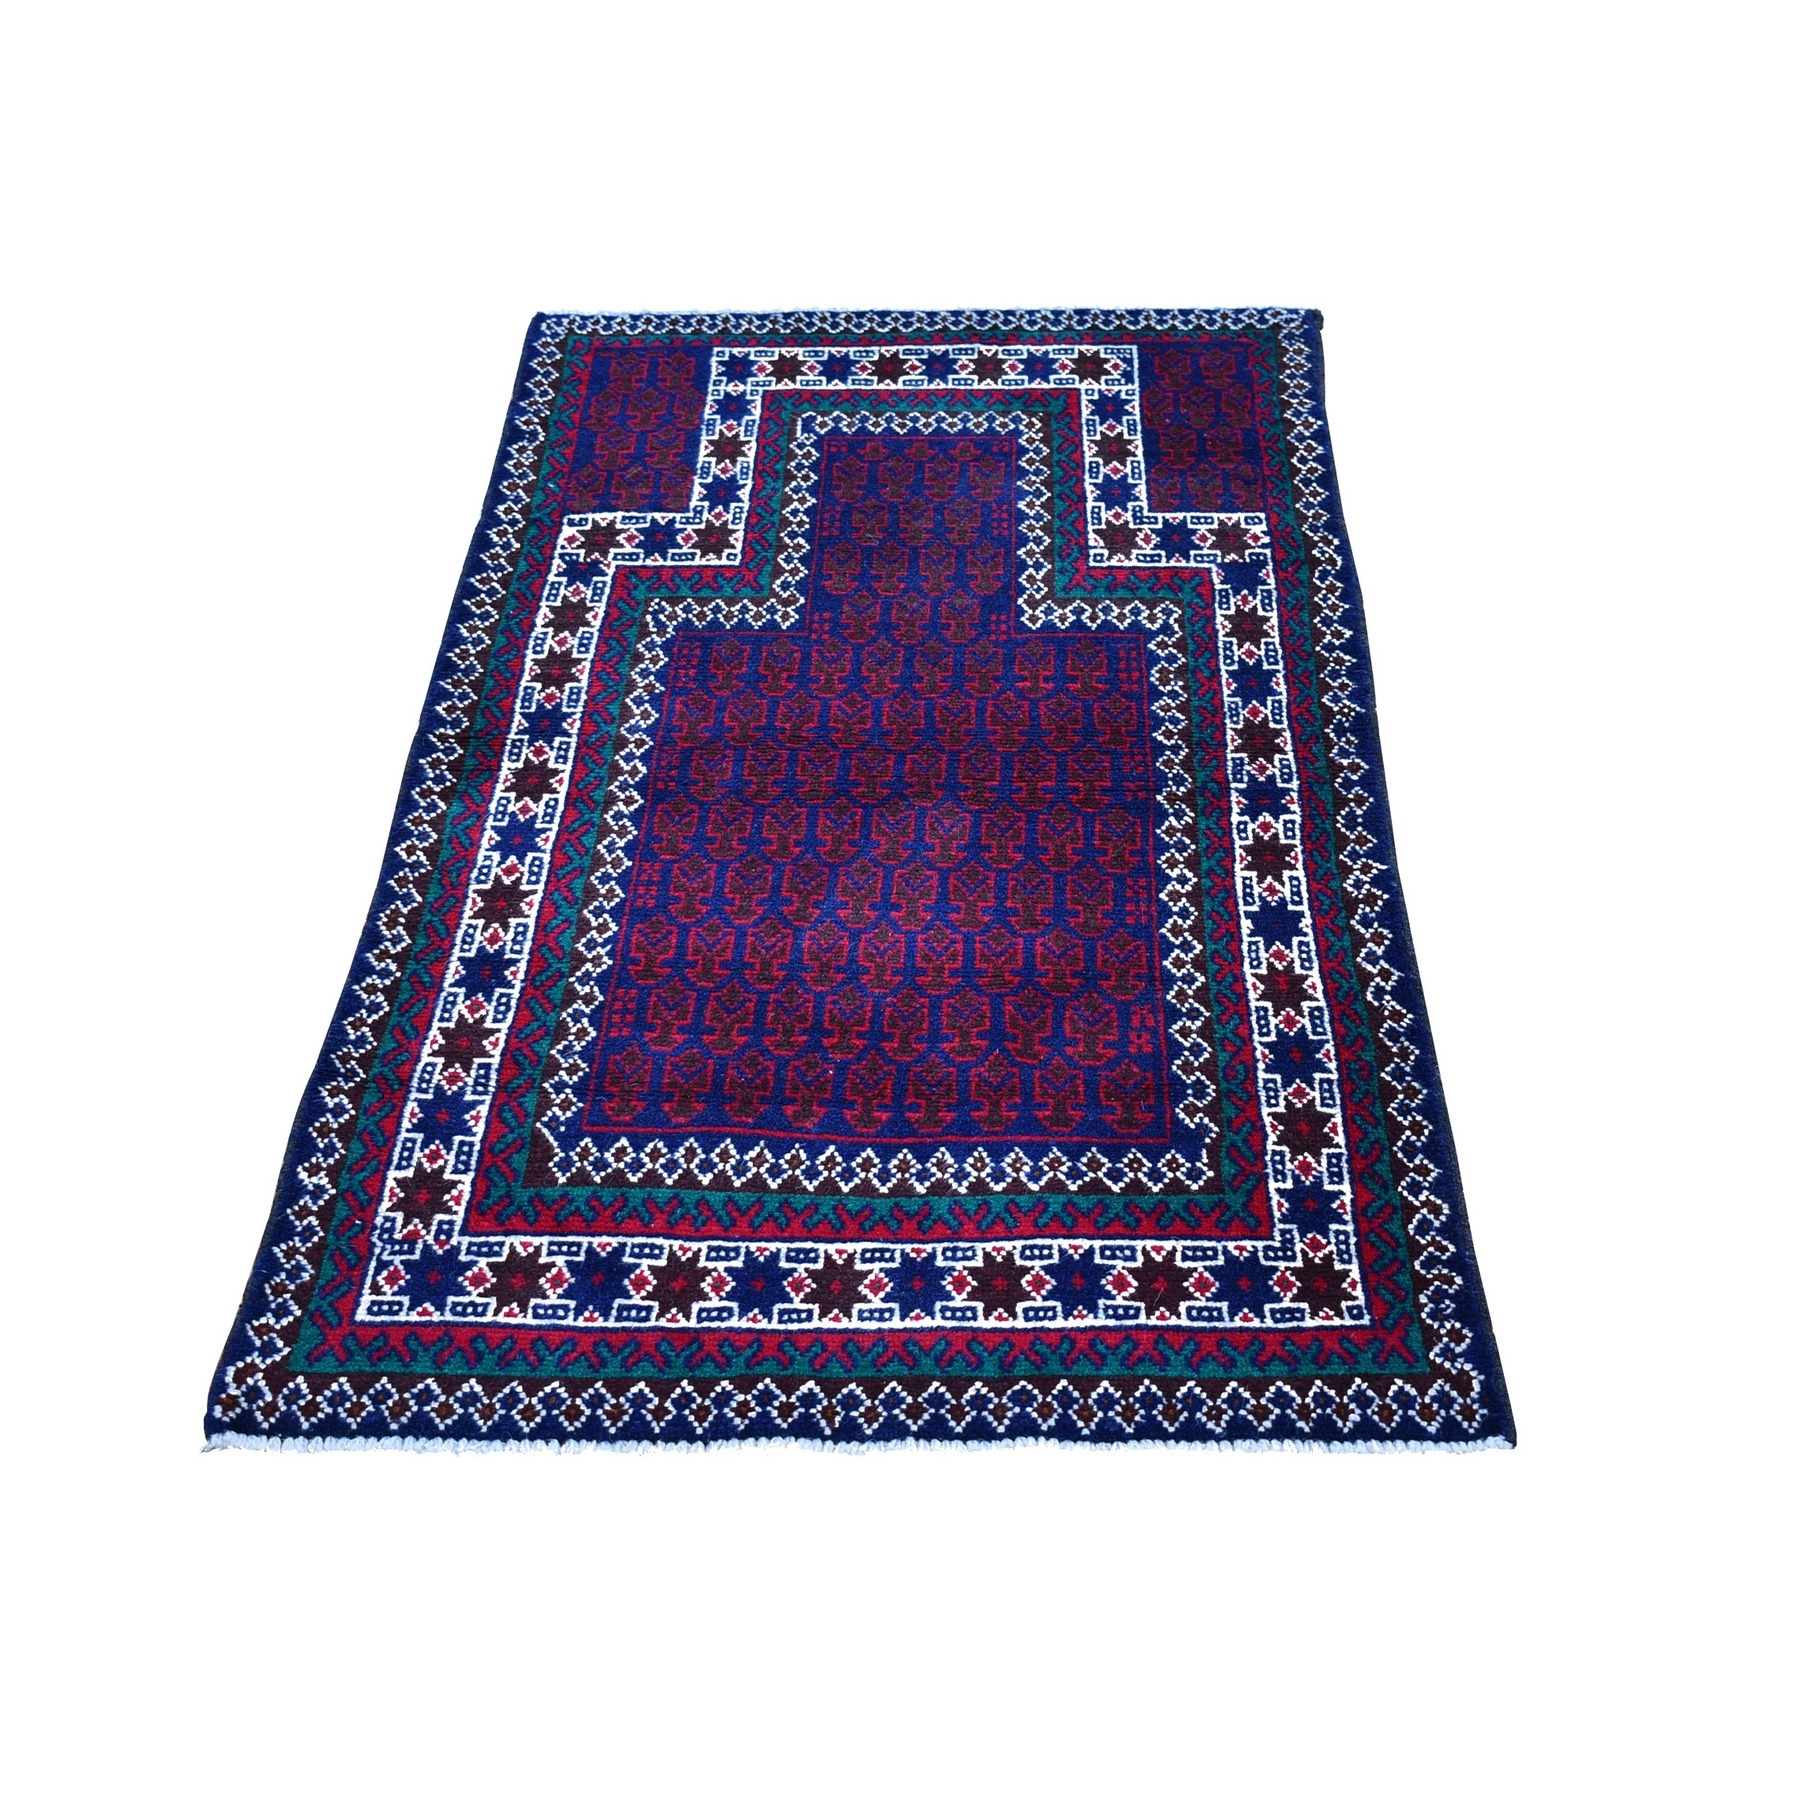 "2'8""x4'8"" New Afghan Baluch with Prayer Boteh Design Navy Blue Wool on Wool Hand Knotted Oriental Rug"